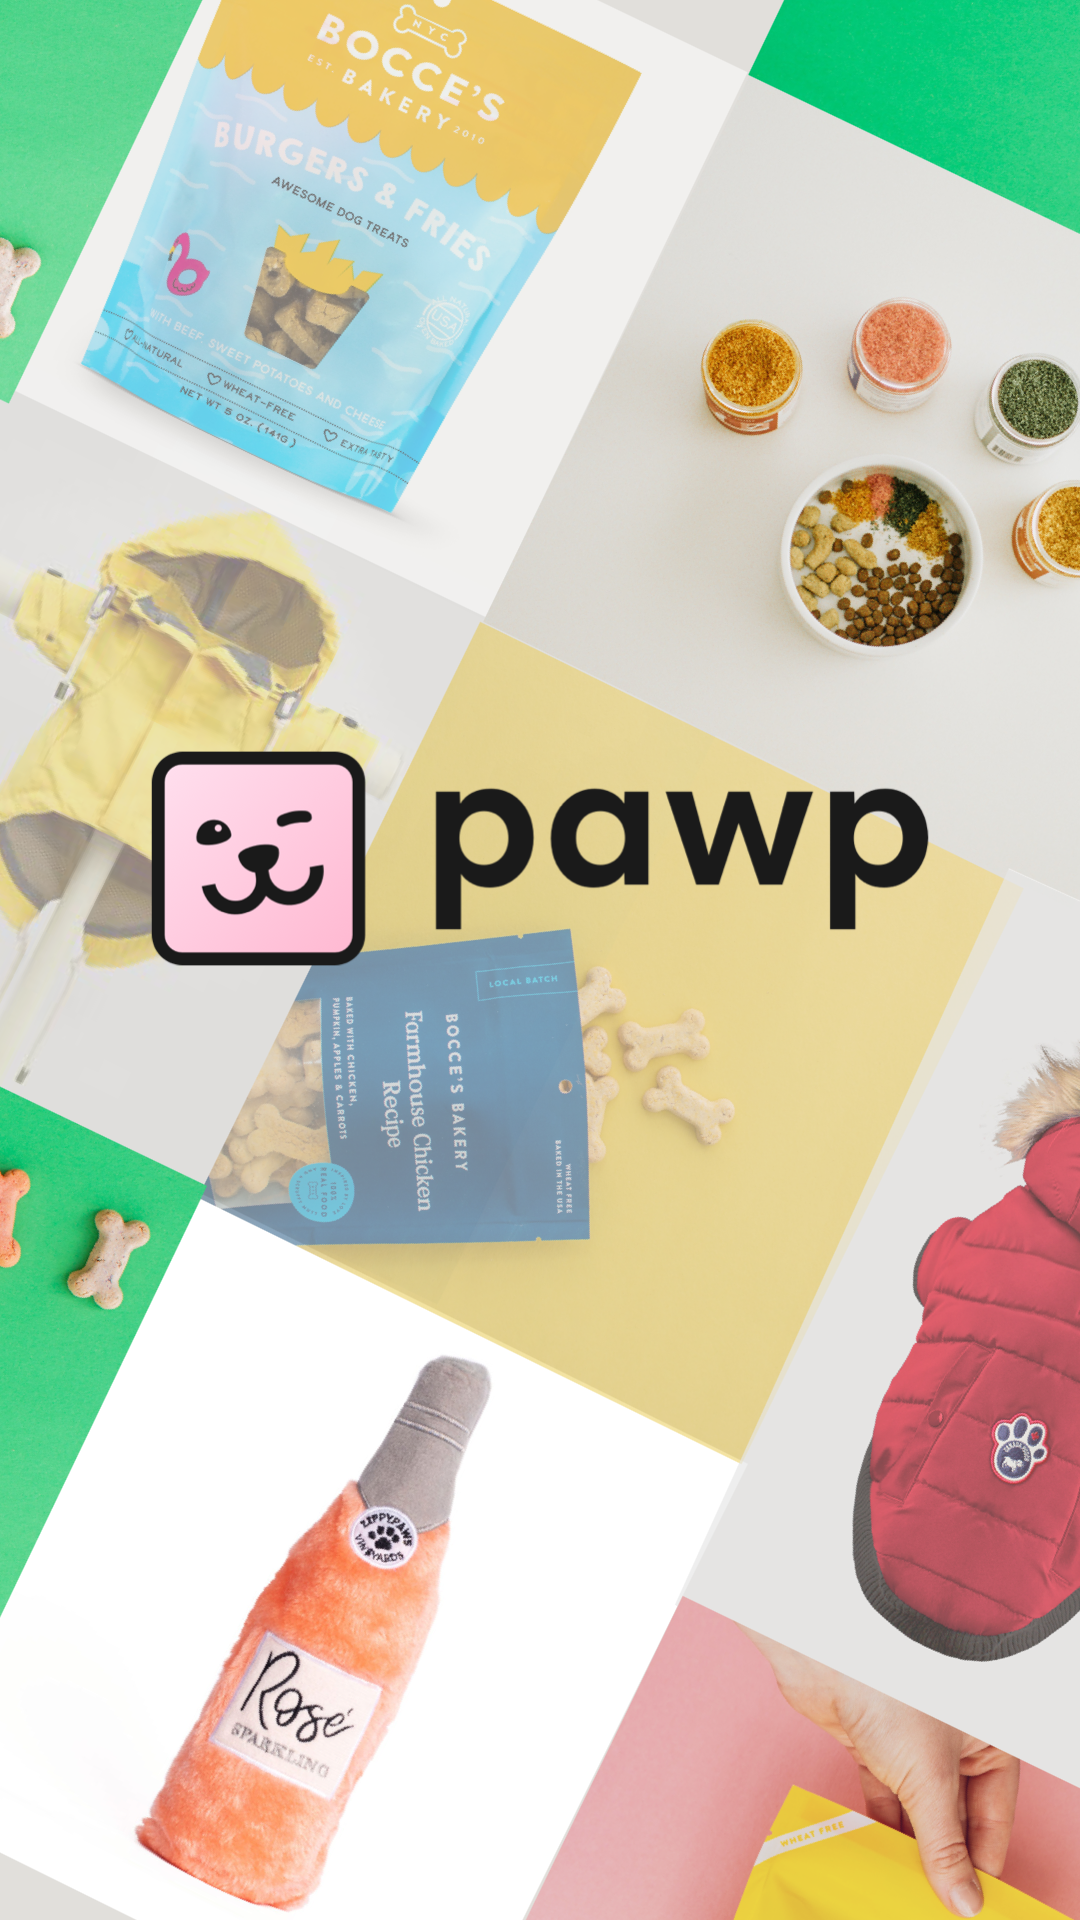 Pawp Clinic Talk To A Vet 24/7 & Get 3,000 In An